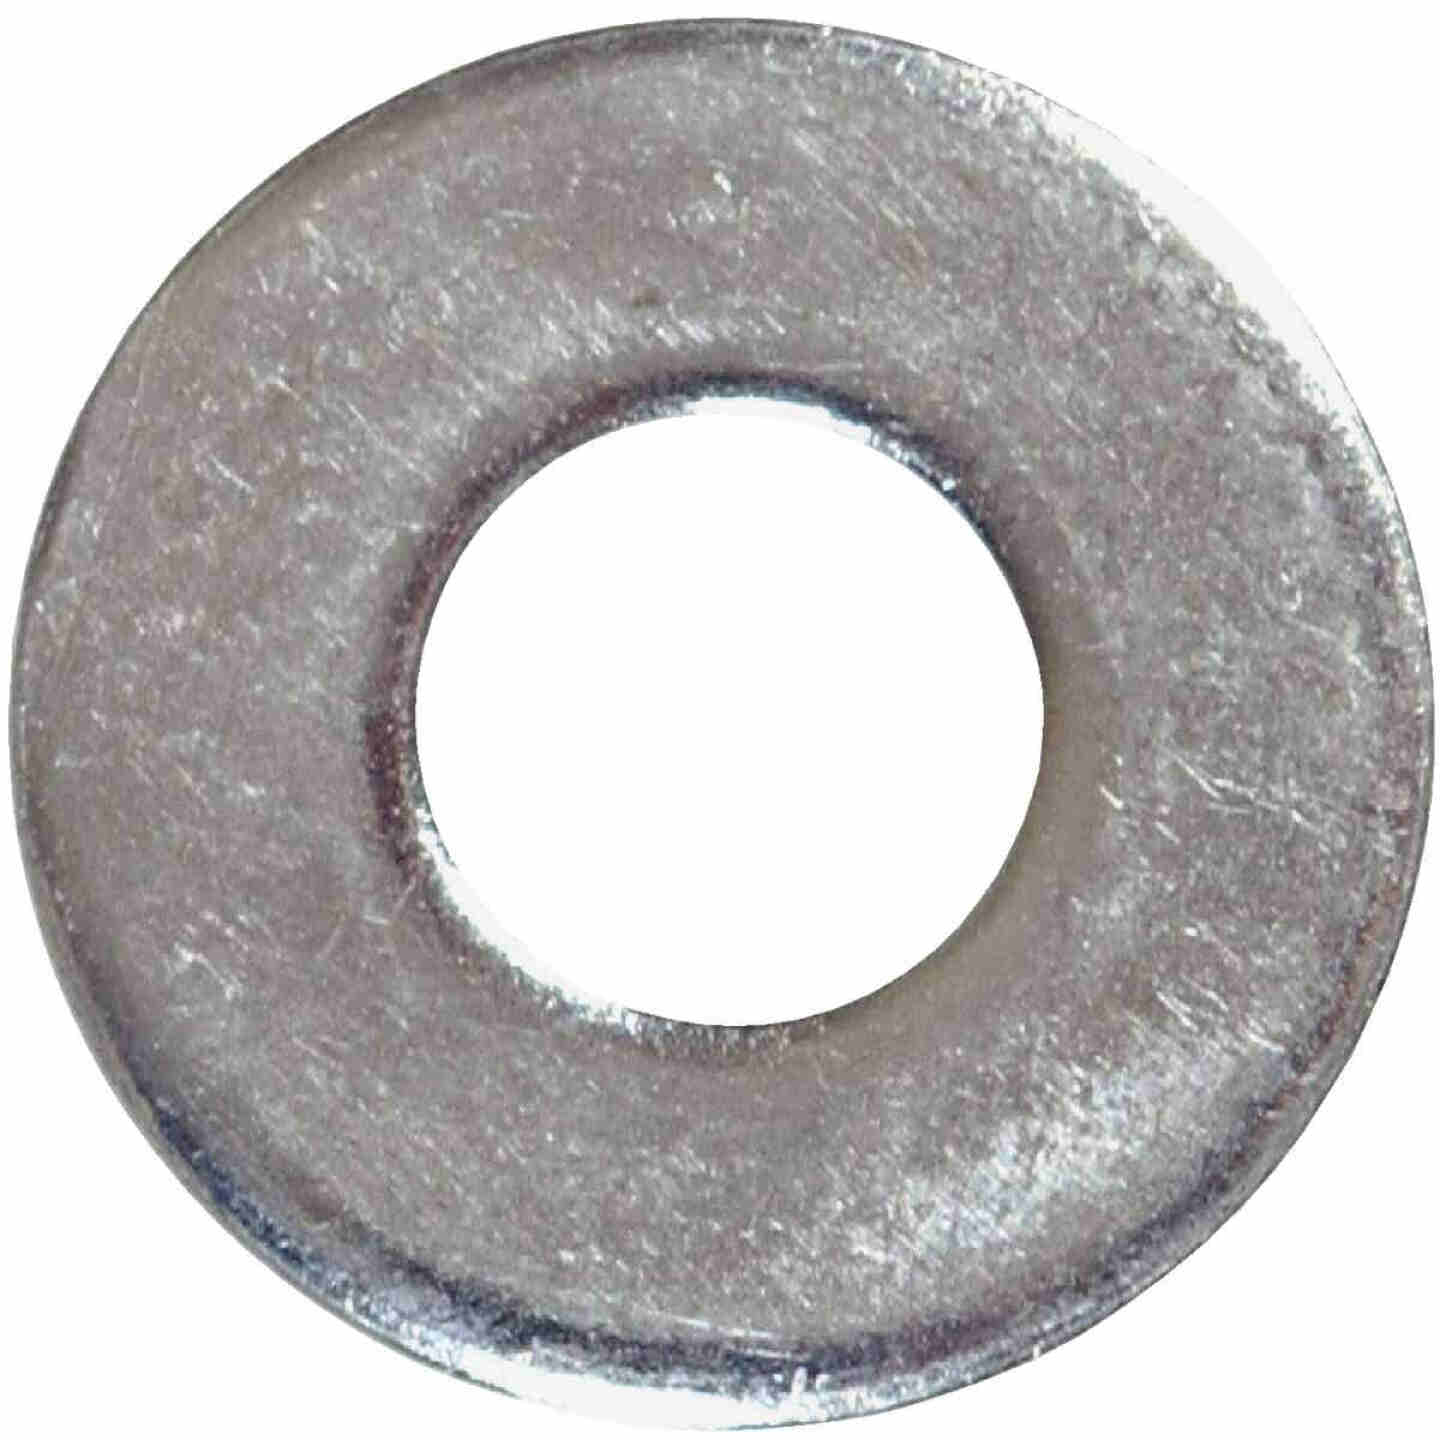 Hillman 3/4 In. Steel Zinc Plated Flat USS Washer (45 Ct., 5 Lb.) Image 1